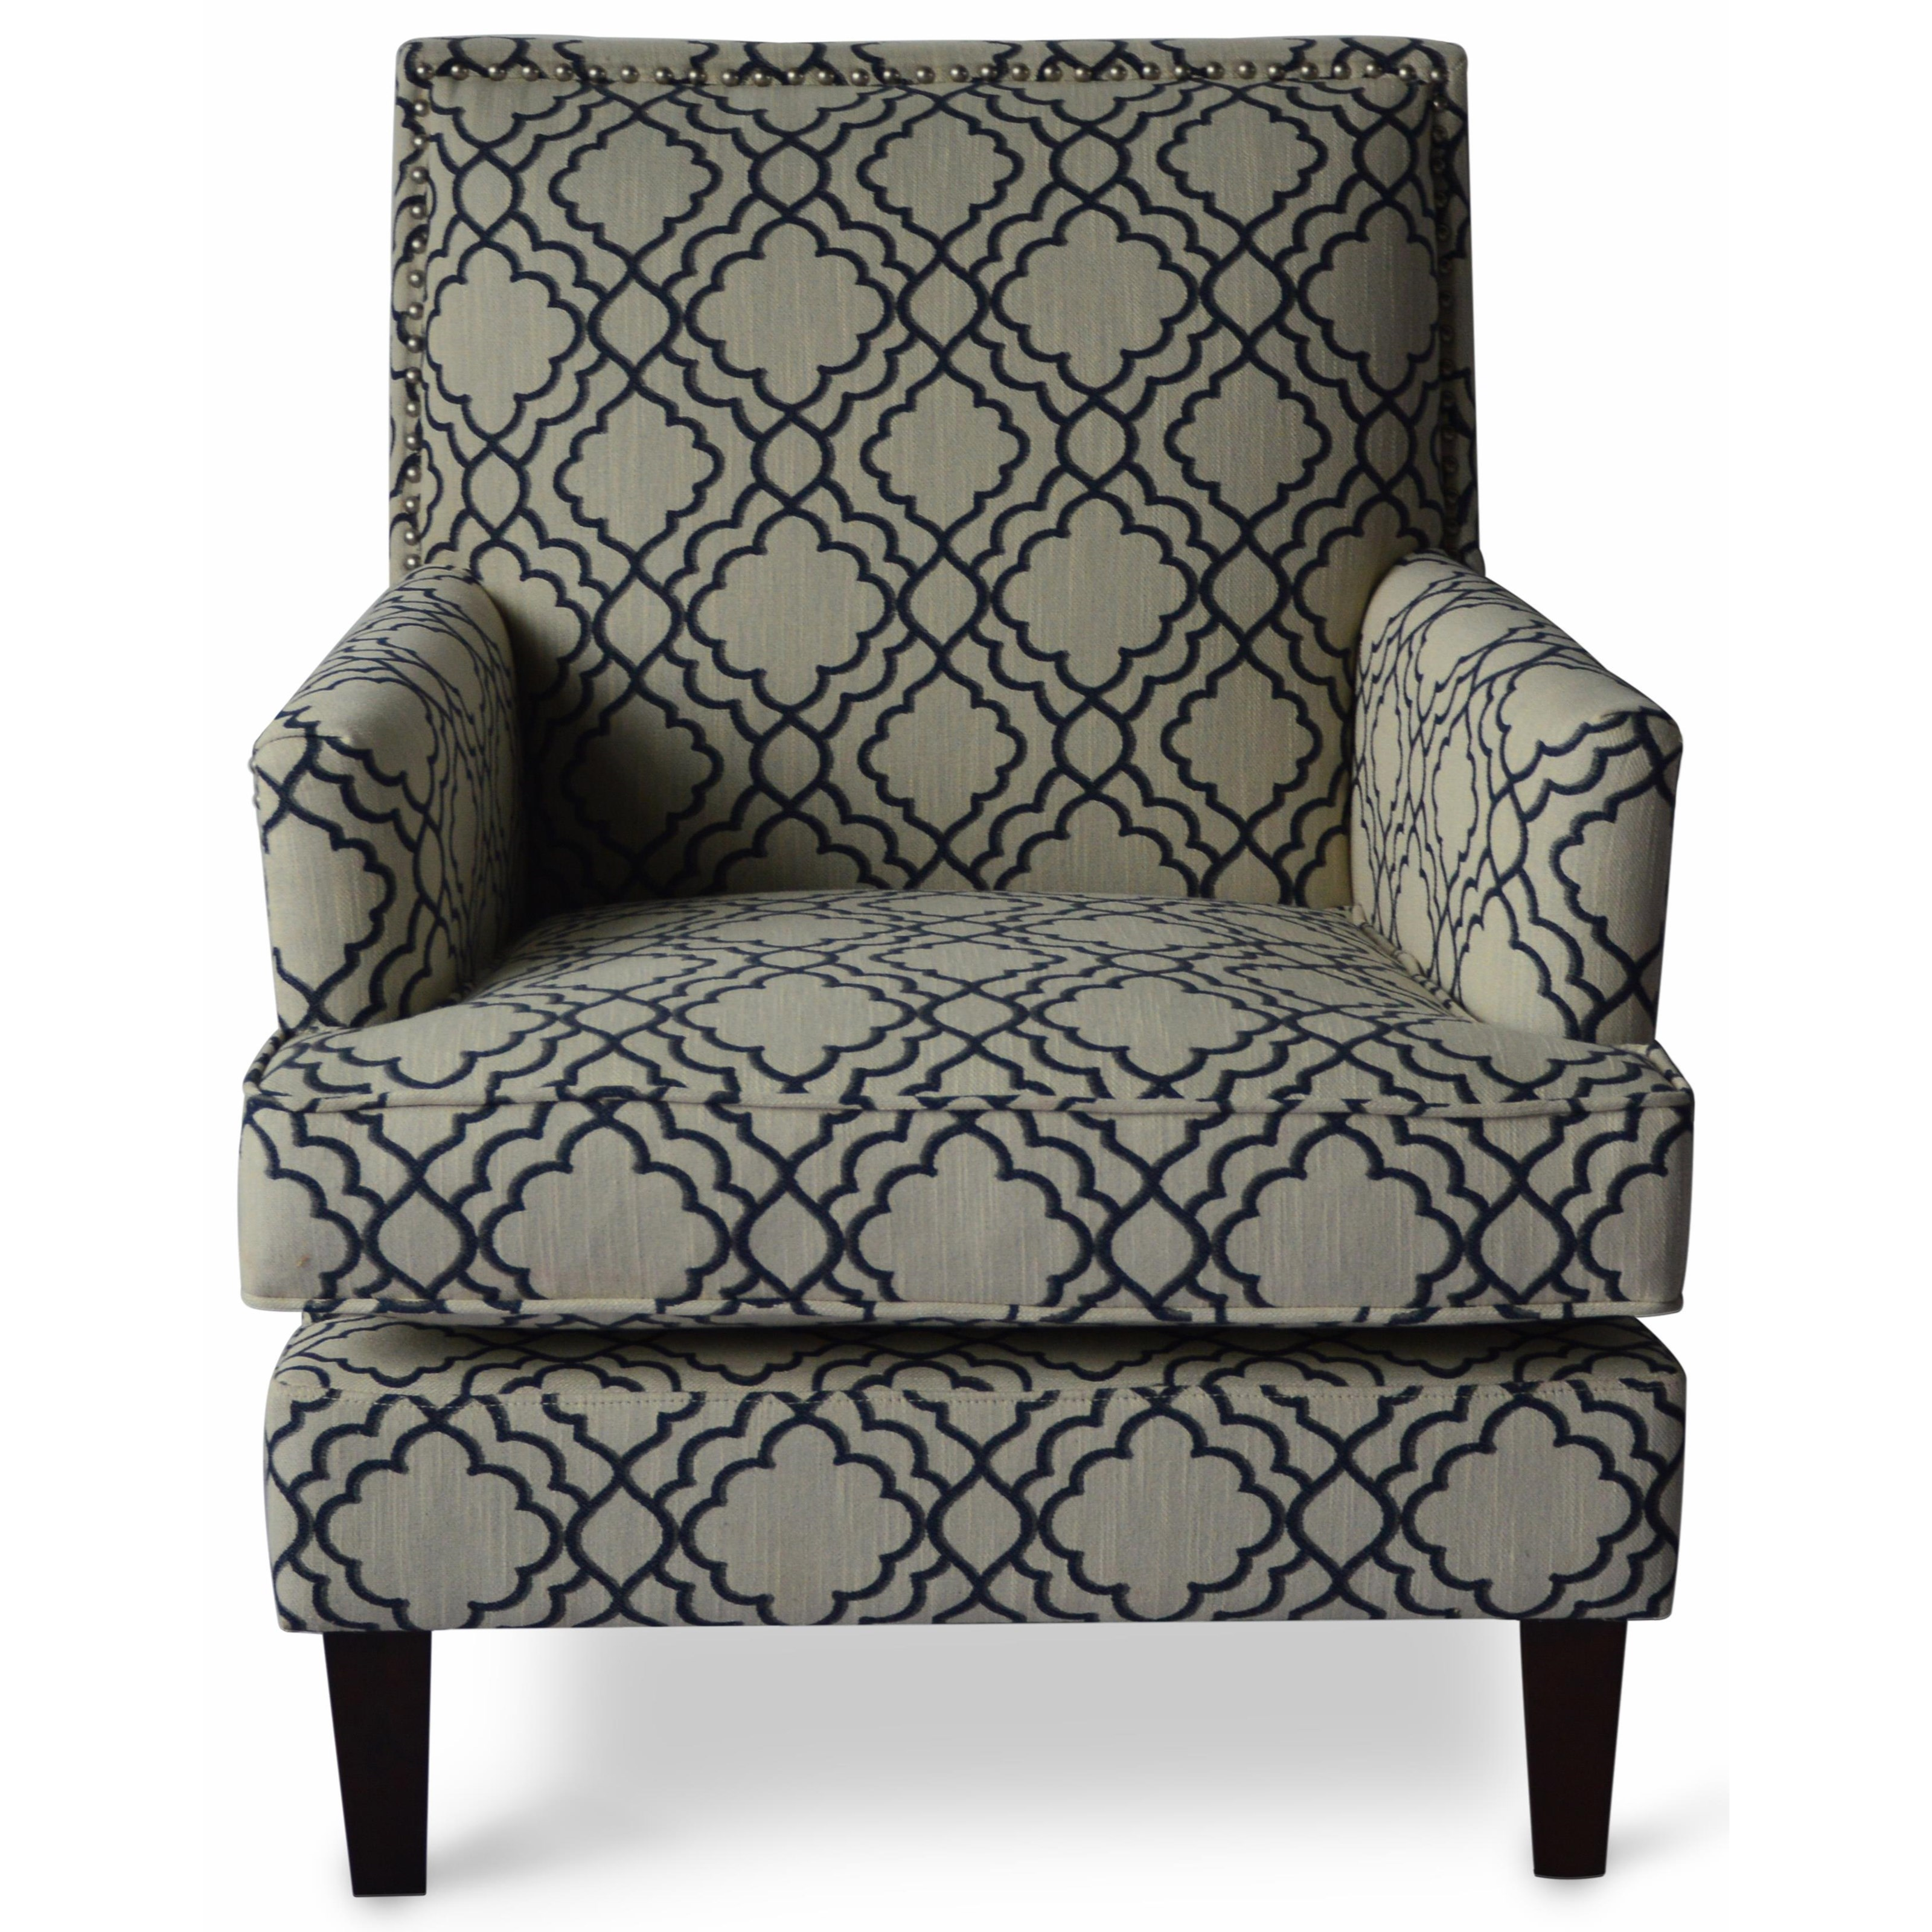 Accent Chairs Aubrey Chair at Walker's Furniture